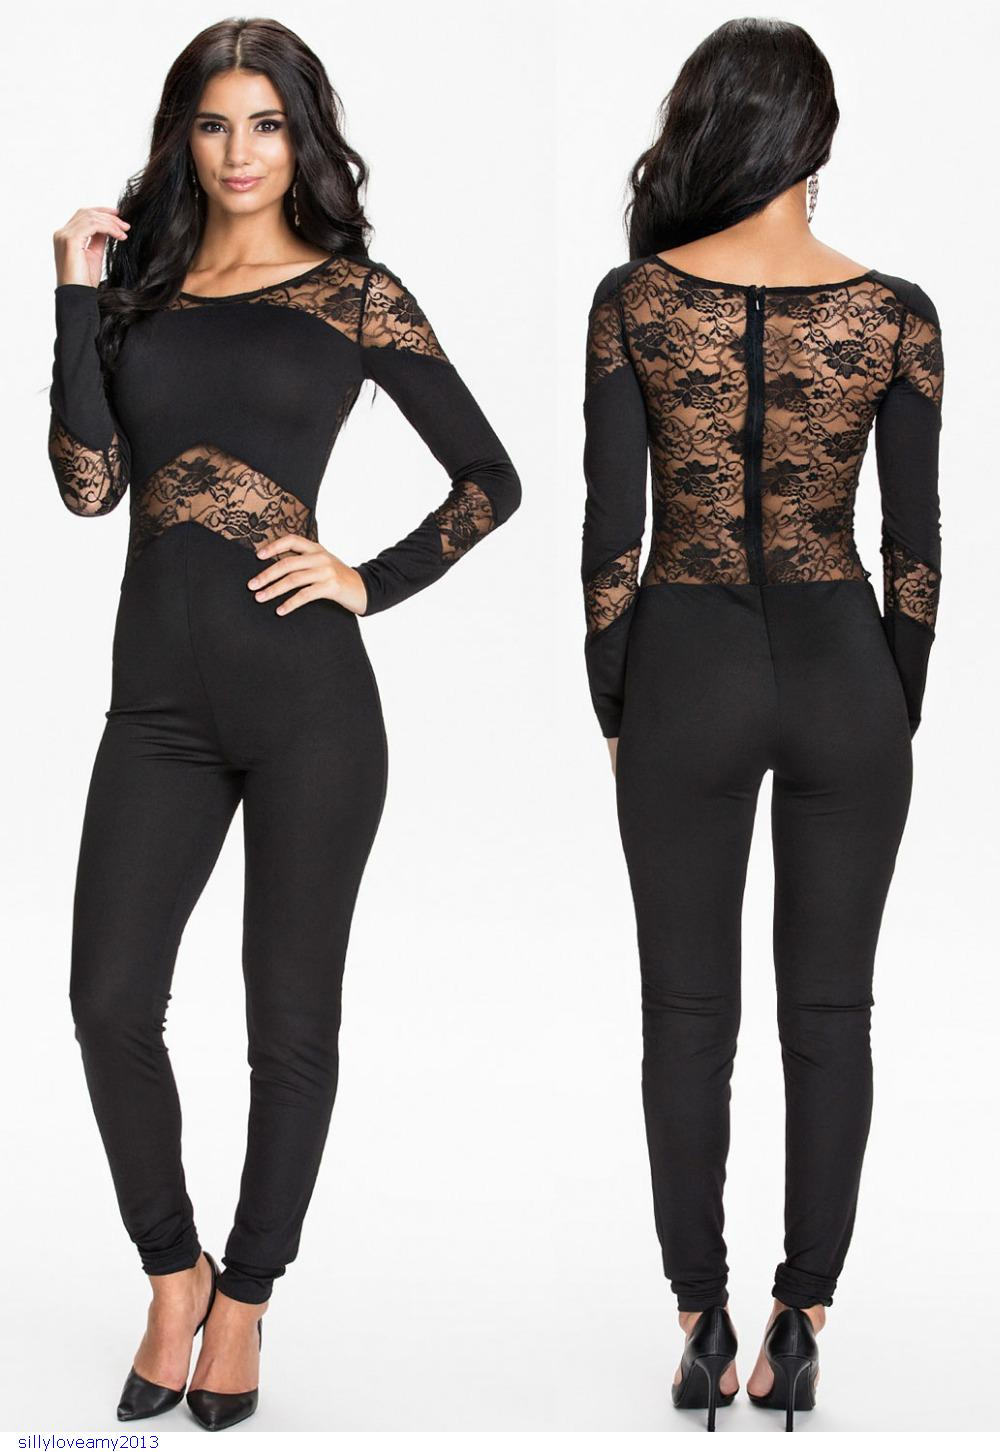 08bc0ca889b8 Get Quotations · 2015 Women Sexy Jumpsuit Fashion Black Long Sleeve  Hollow-out Lace Bodycon Jumpsuits Rompers Club